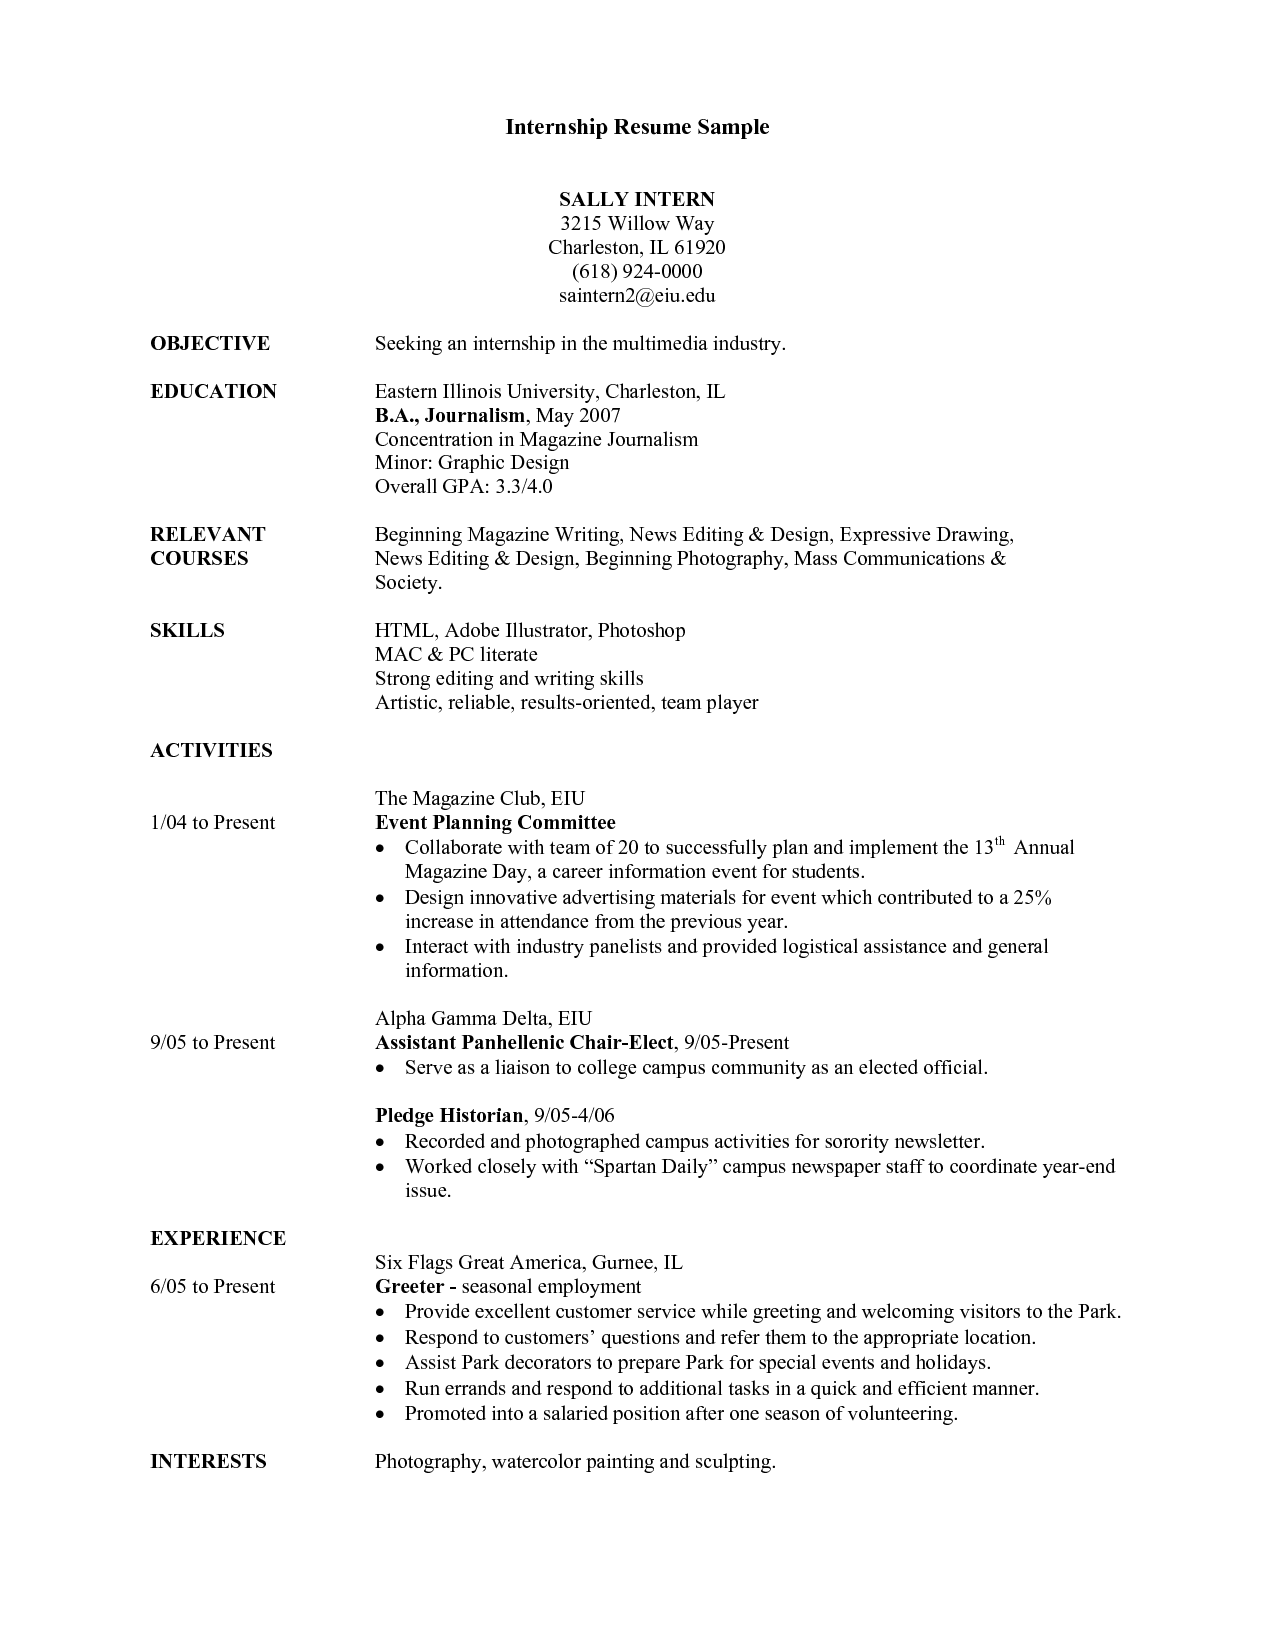 Student Resume Example Sample College Internship Samples Students Template College